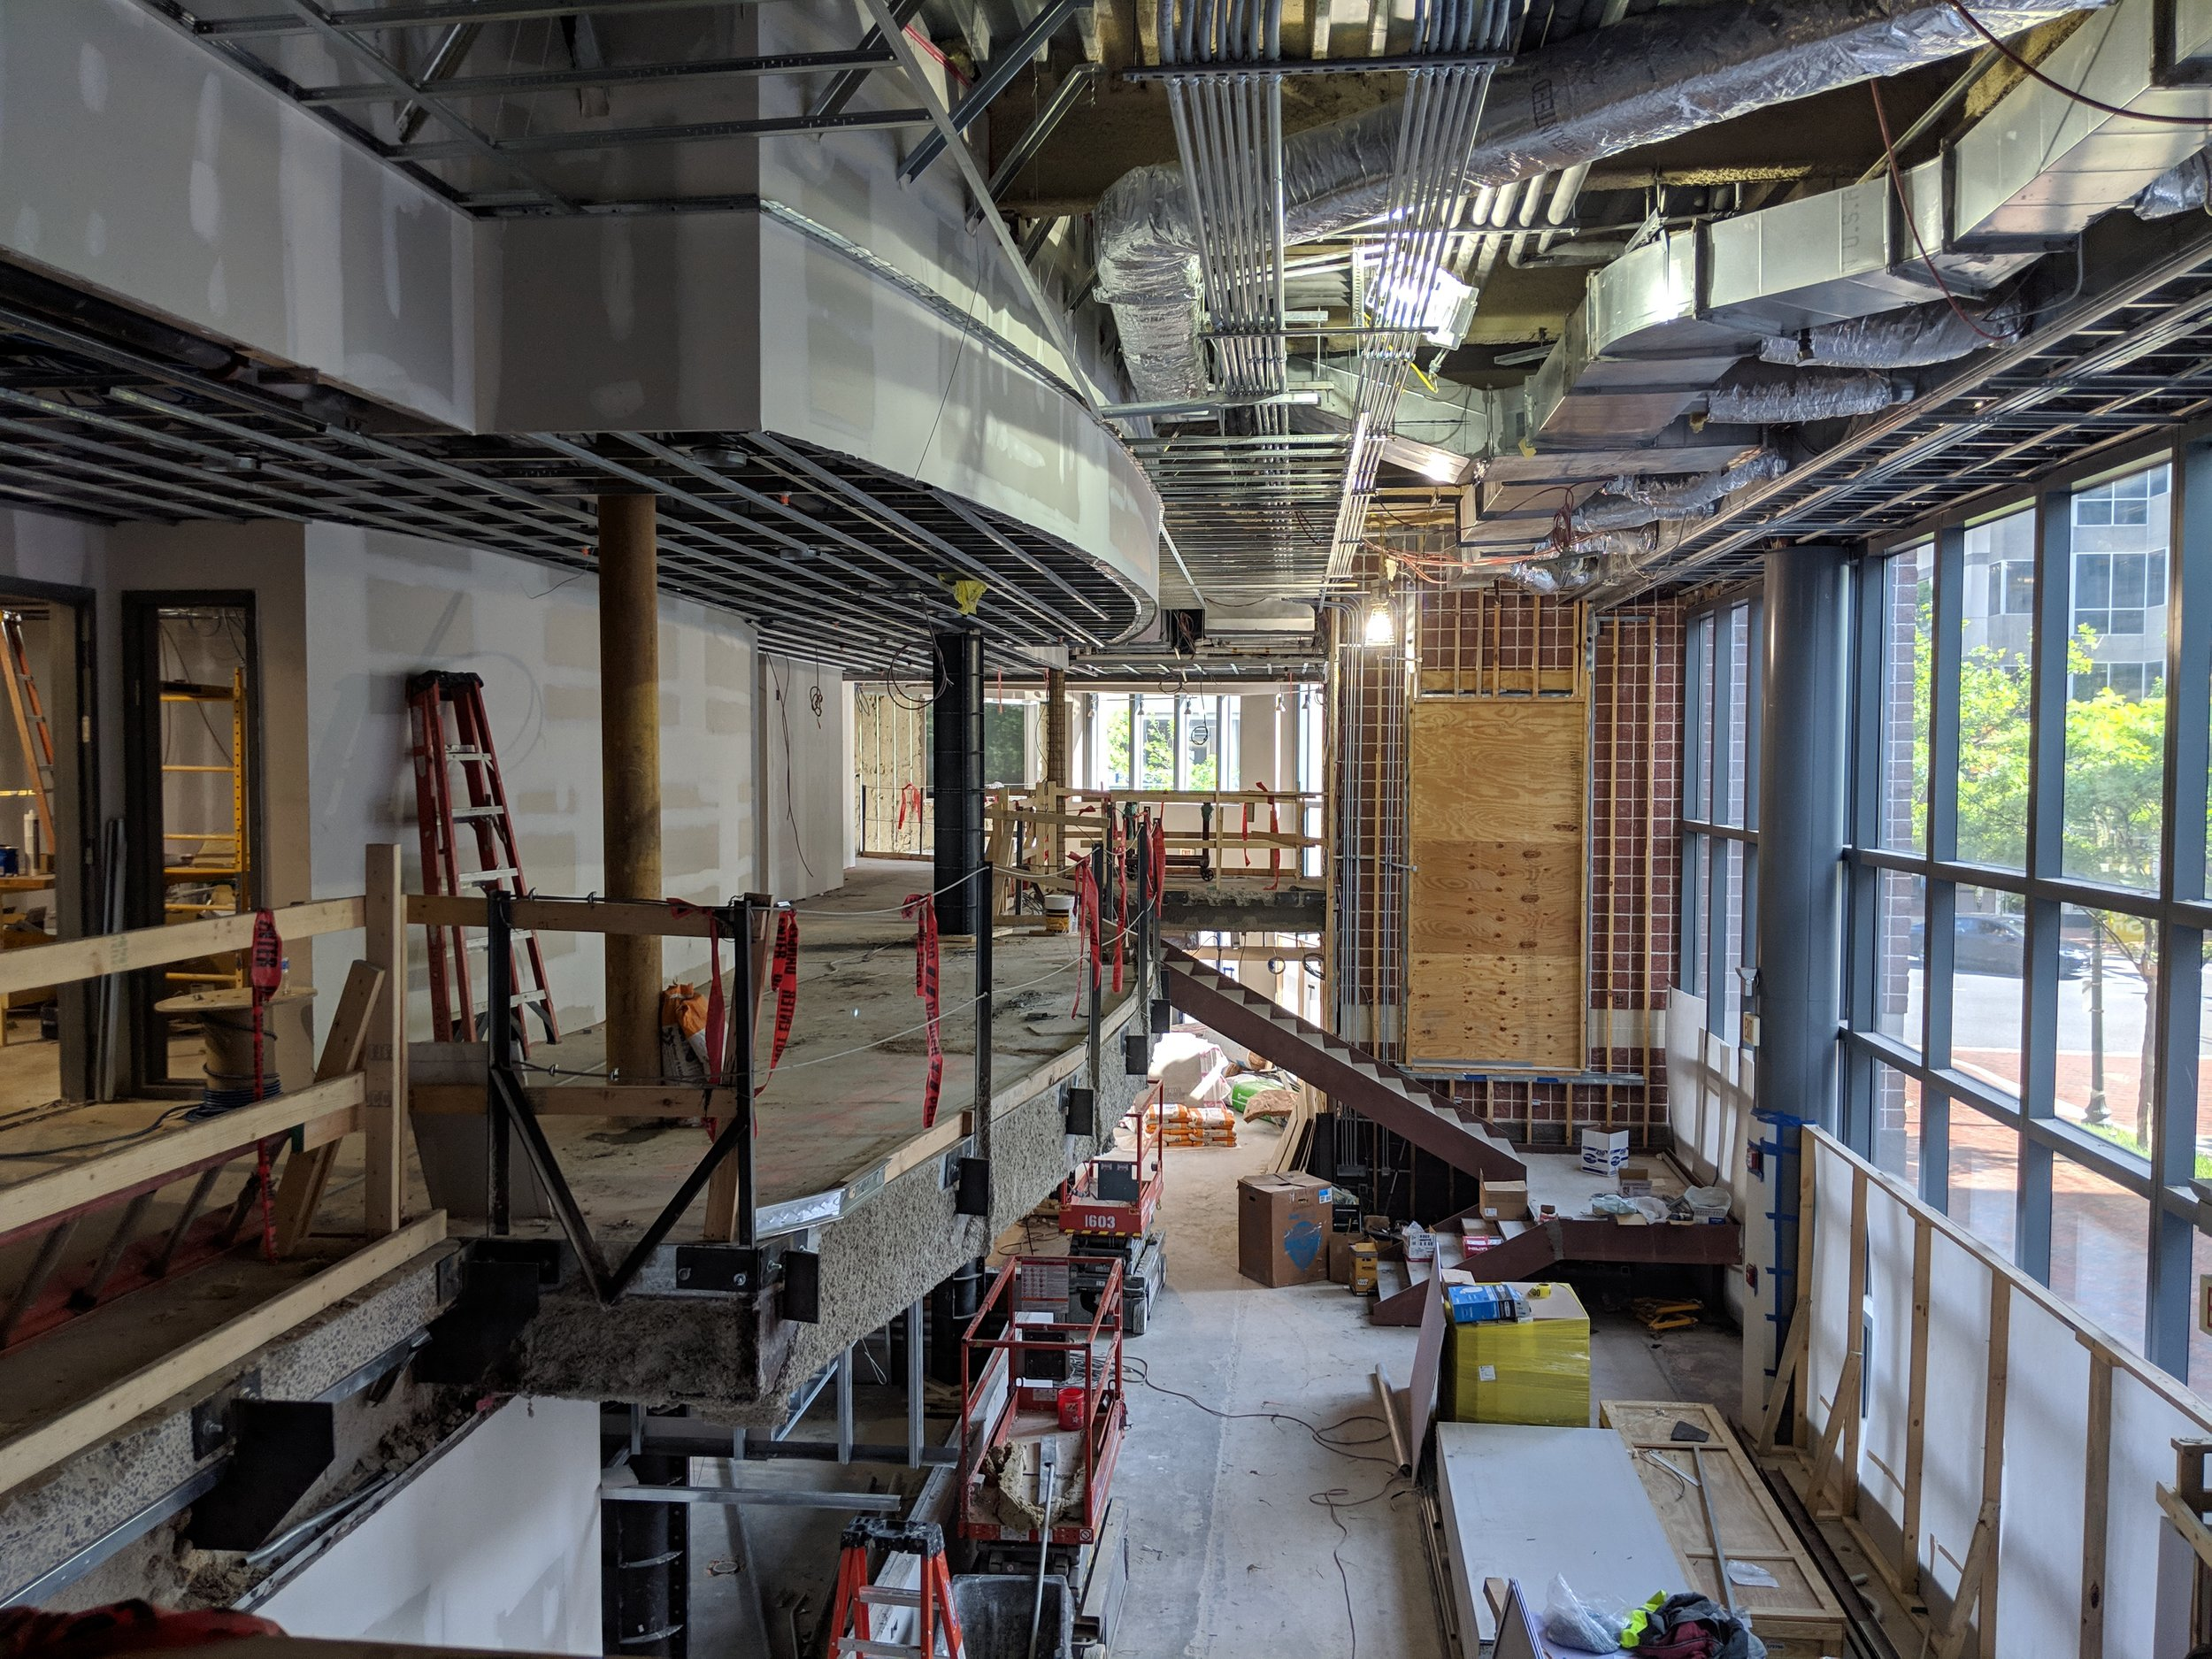 May 2019  - In the lobby, the curved feature has been added to the ceiling to echo the balcony shape, where the railing will soon be installed.